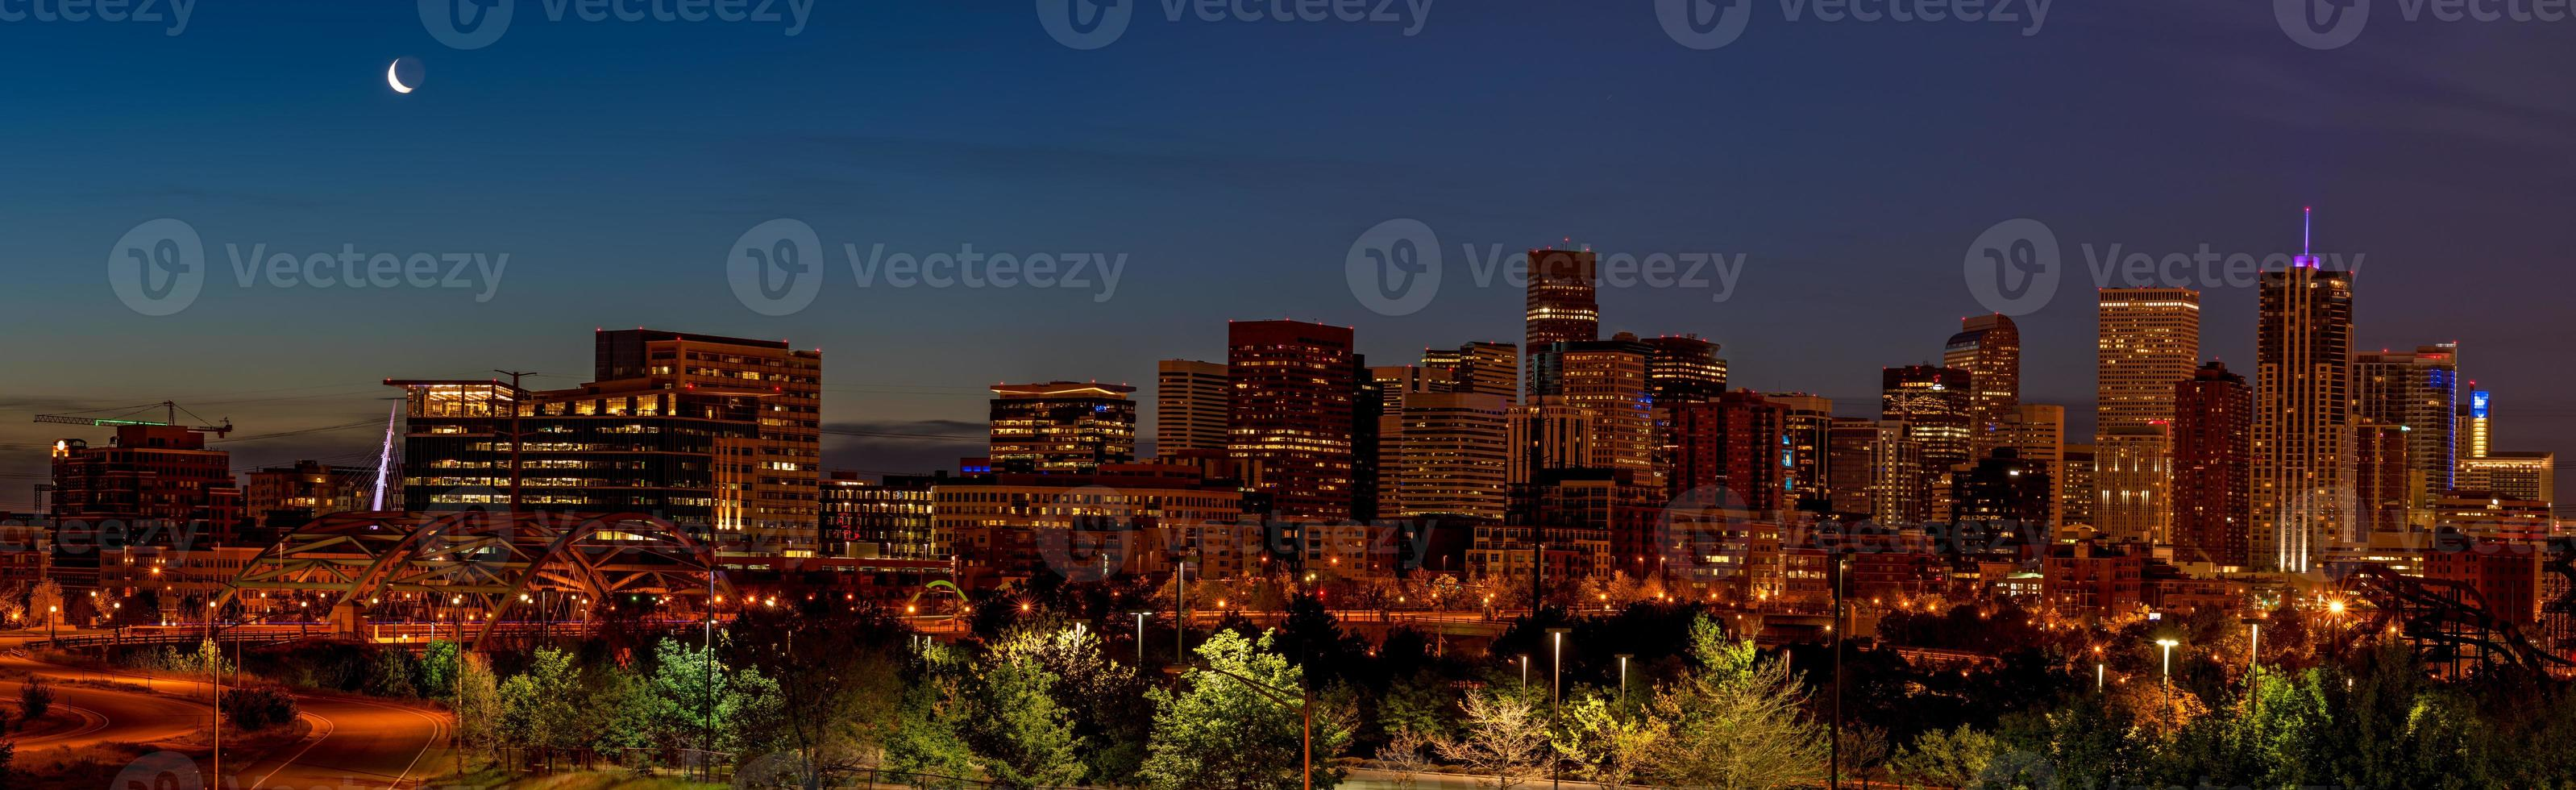 Unque view od the Denver skyline at night photo